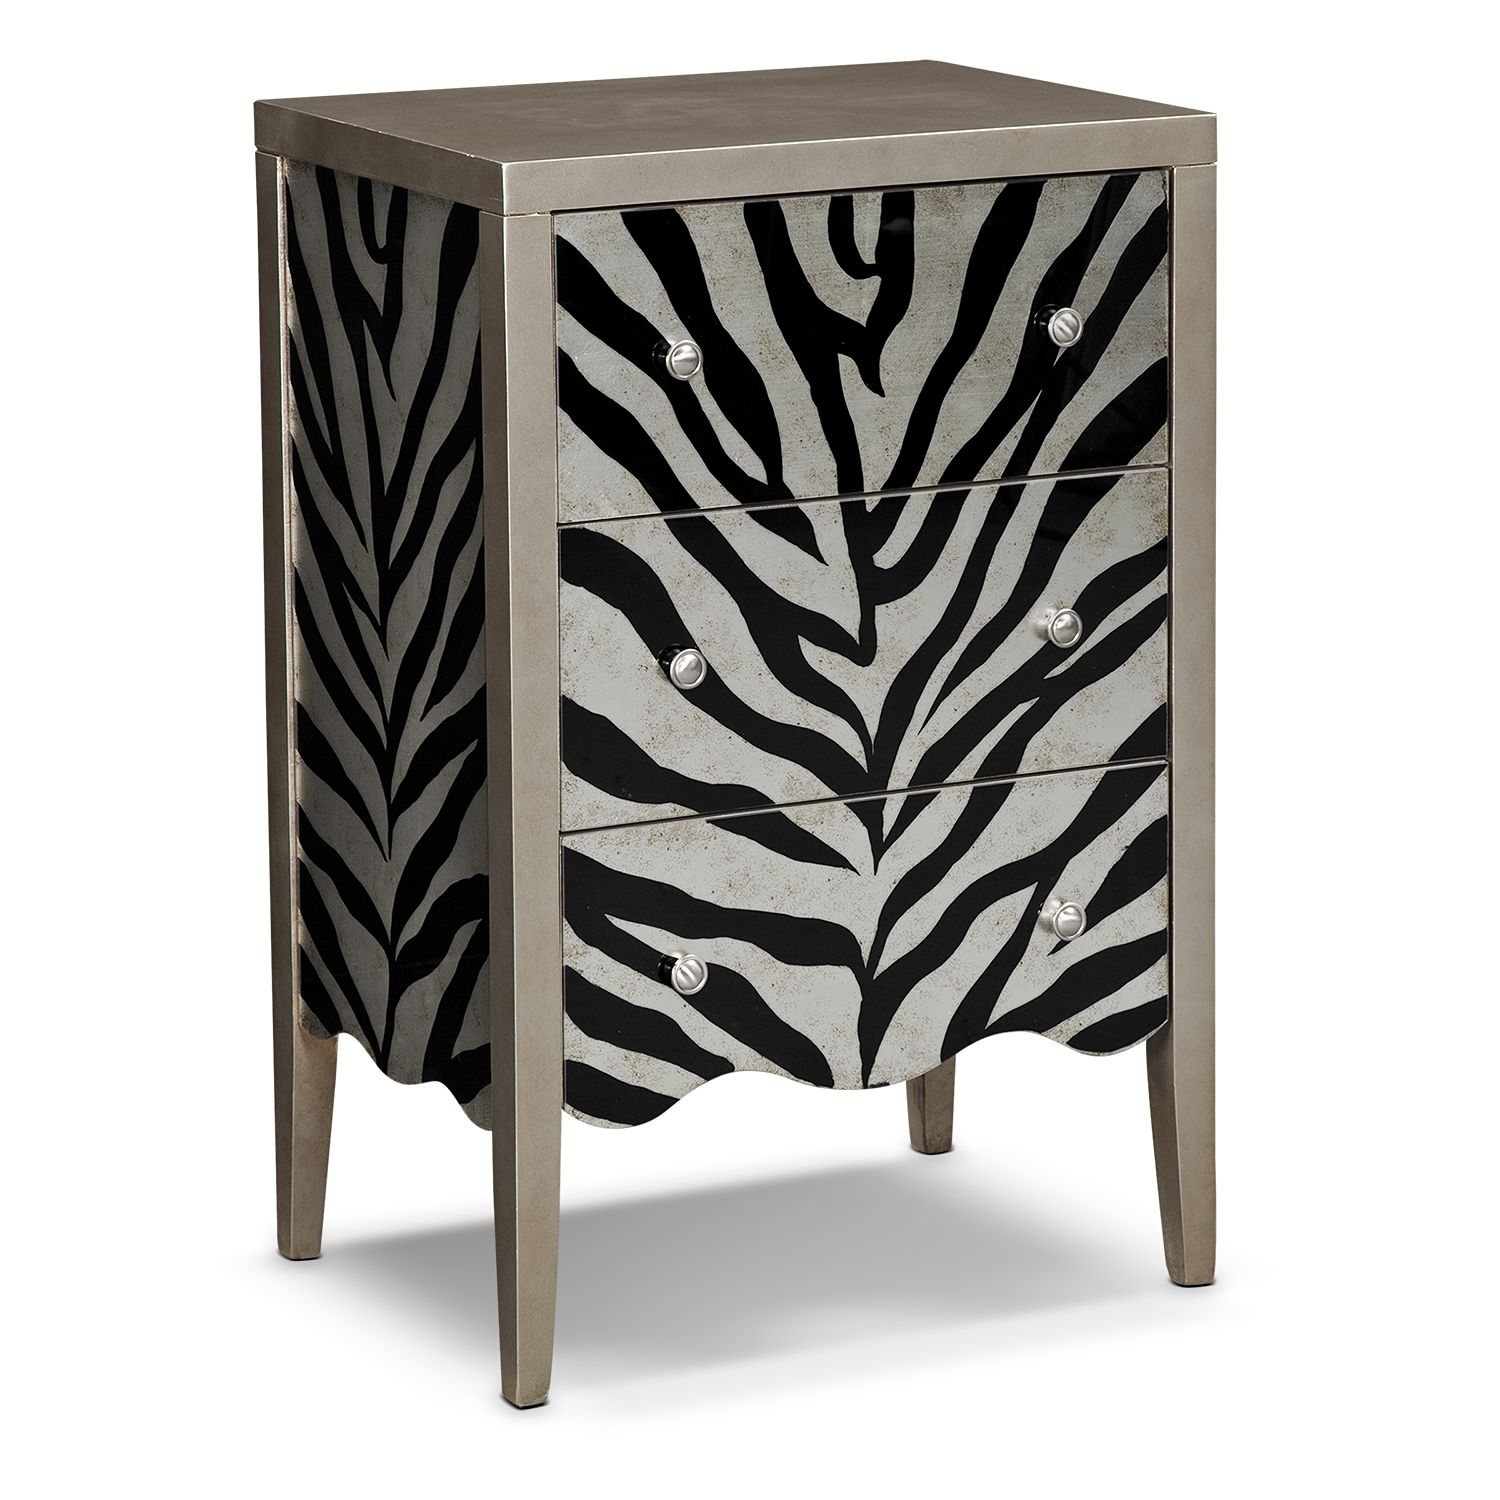 american signature furniture zebra accent pieces chest print end table open top coffee play glass lift kohl official website tripod side liquor cabinet ikea cocktail farmhouse